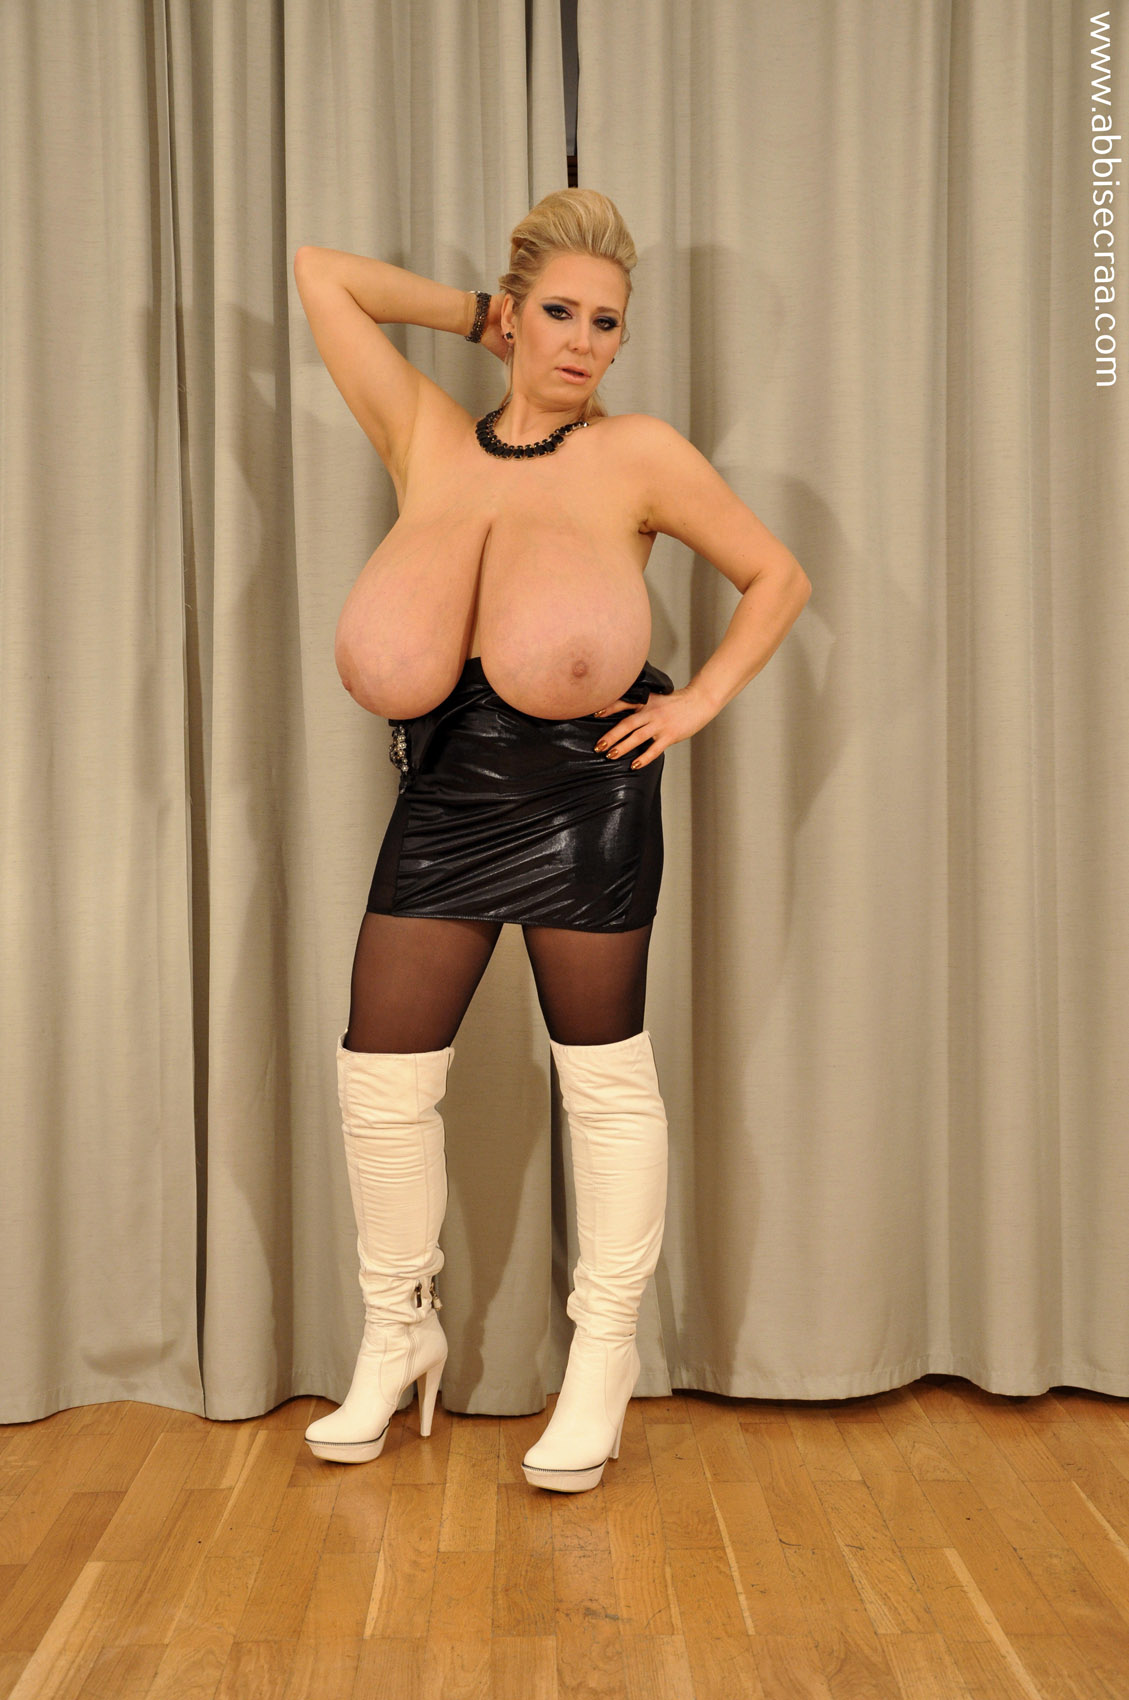 Busty terry nova fucked by photographer first audition 4